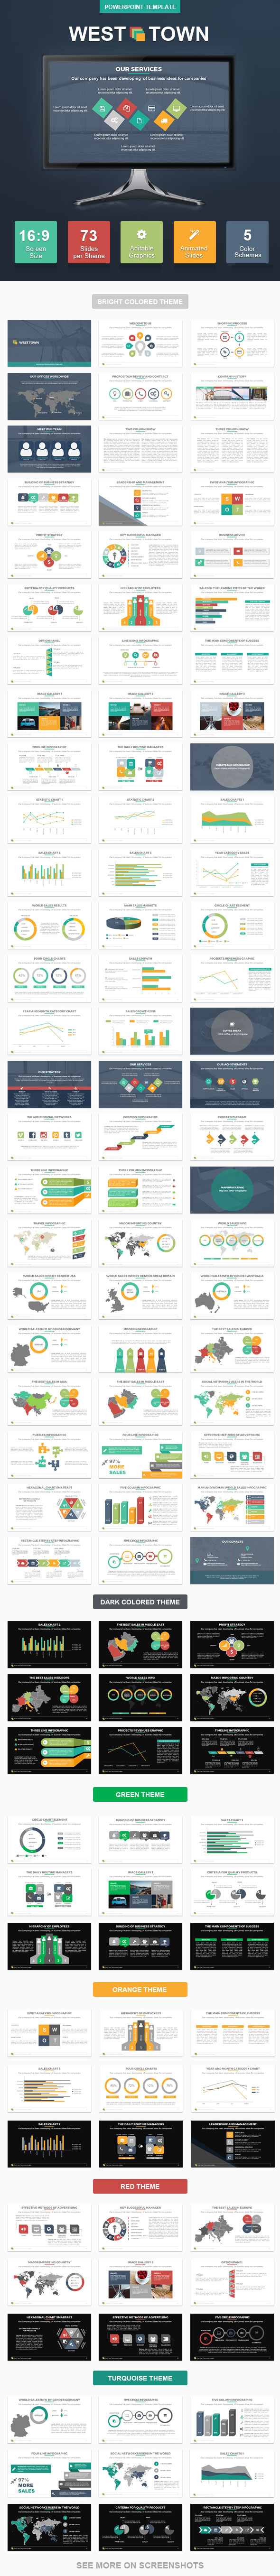 GraphicRiver WestTown PowerPoint Presentation Template 11494206